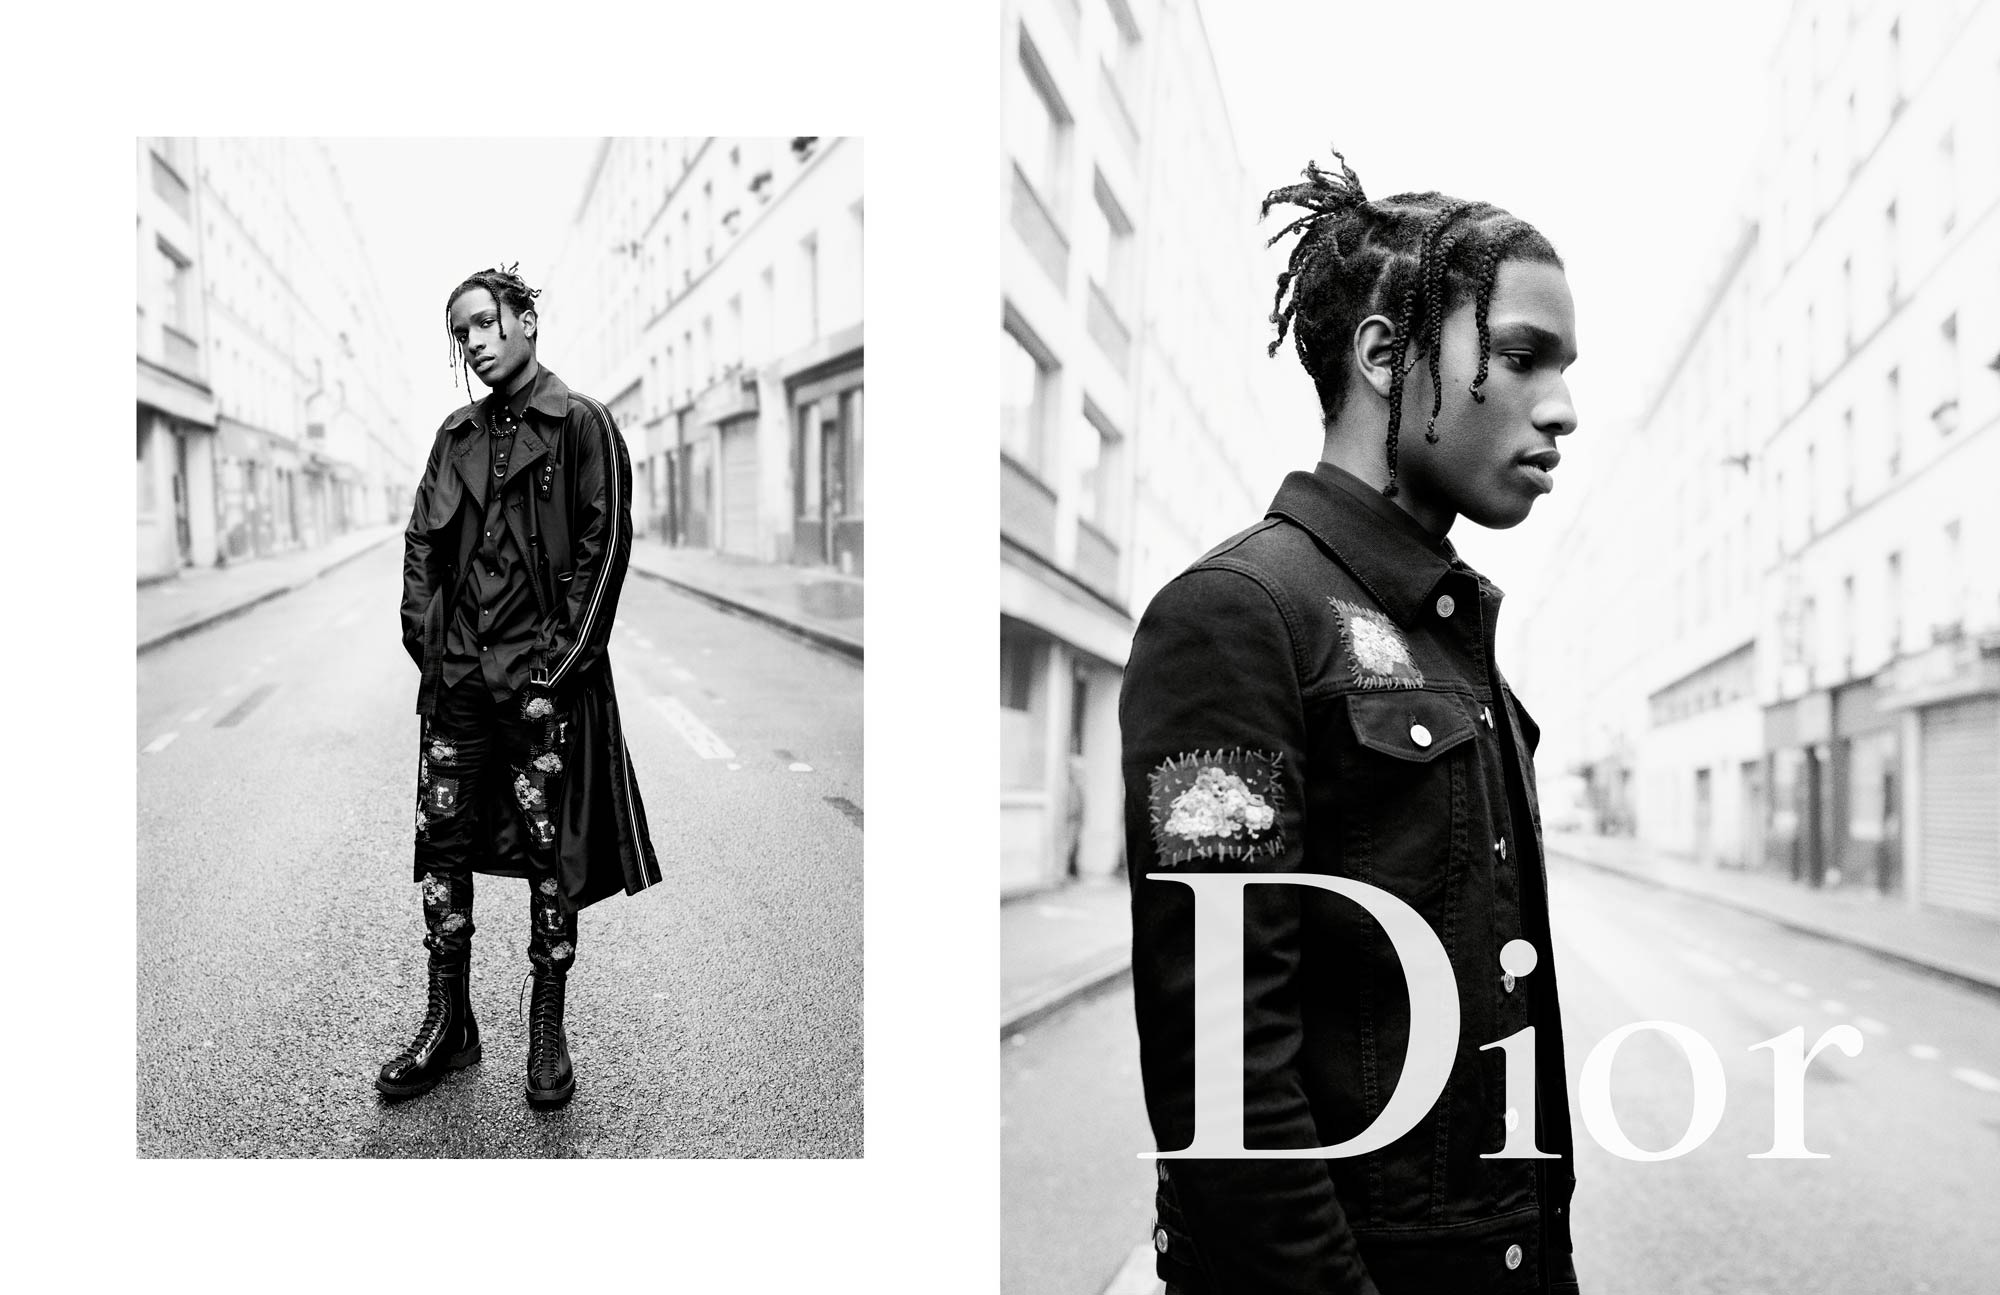 dior-homme-summer-17-ad-campaign-feat-asap-rocky-boy-george-1